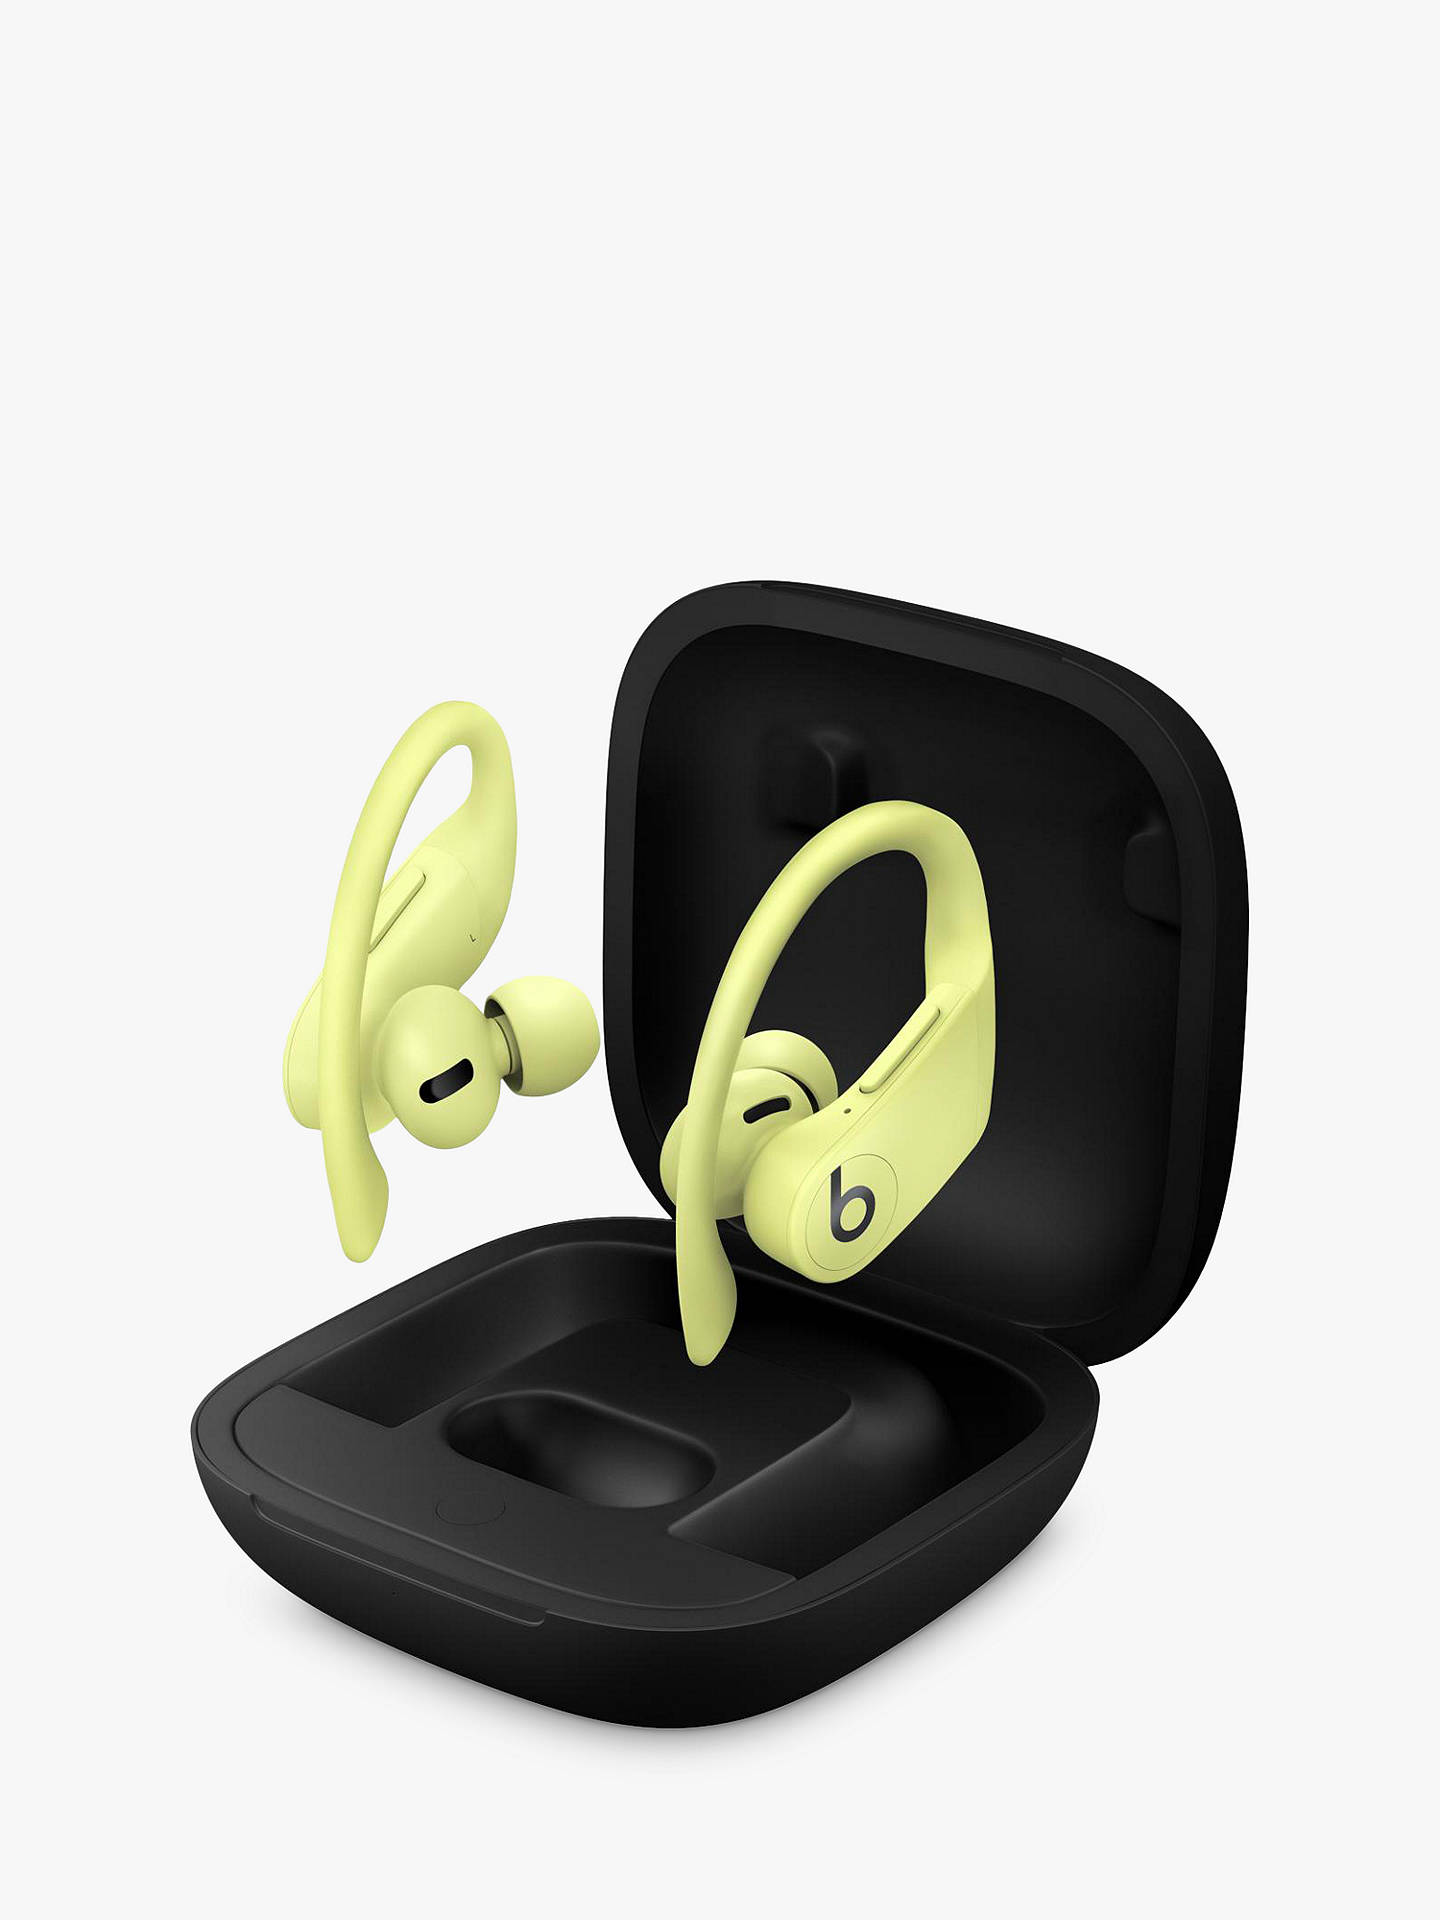 Buy Powerbeats Pro True Wireless Bluetooth In-Ear Sport Headphones with Mic/Remote, Spring Yellow Online at johnlewis.com